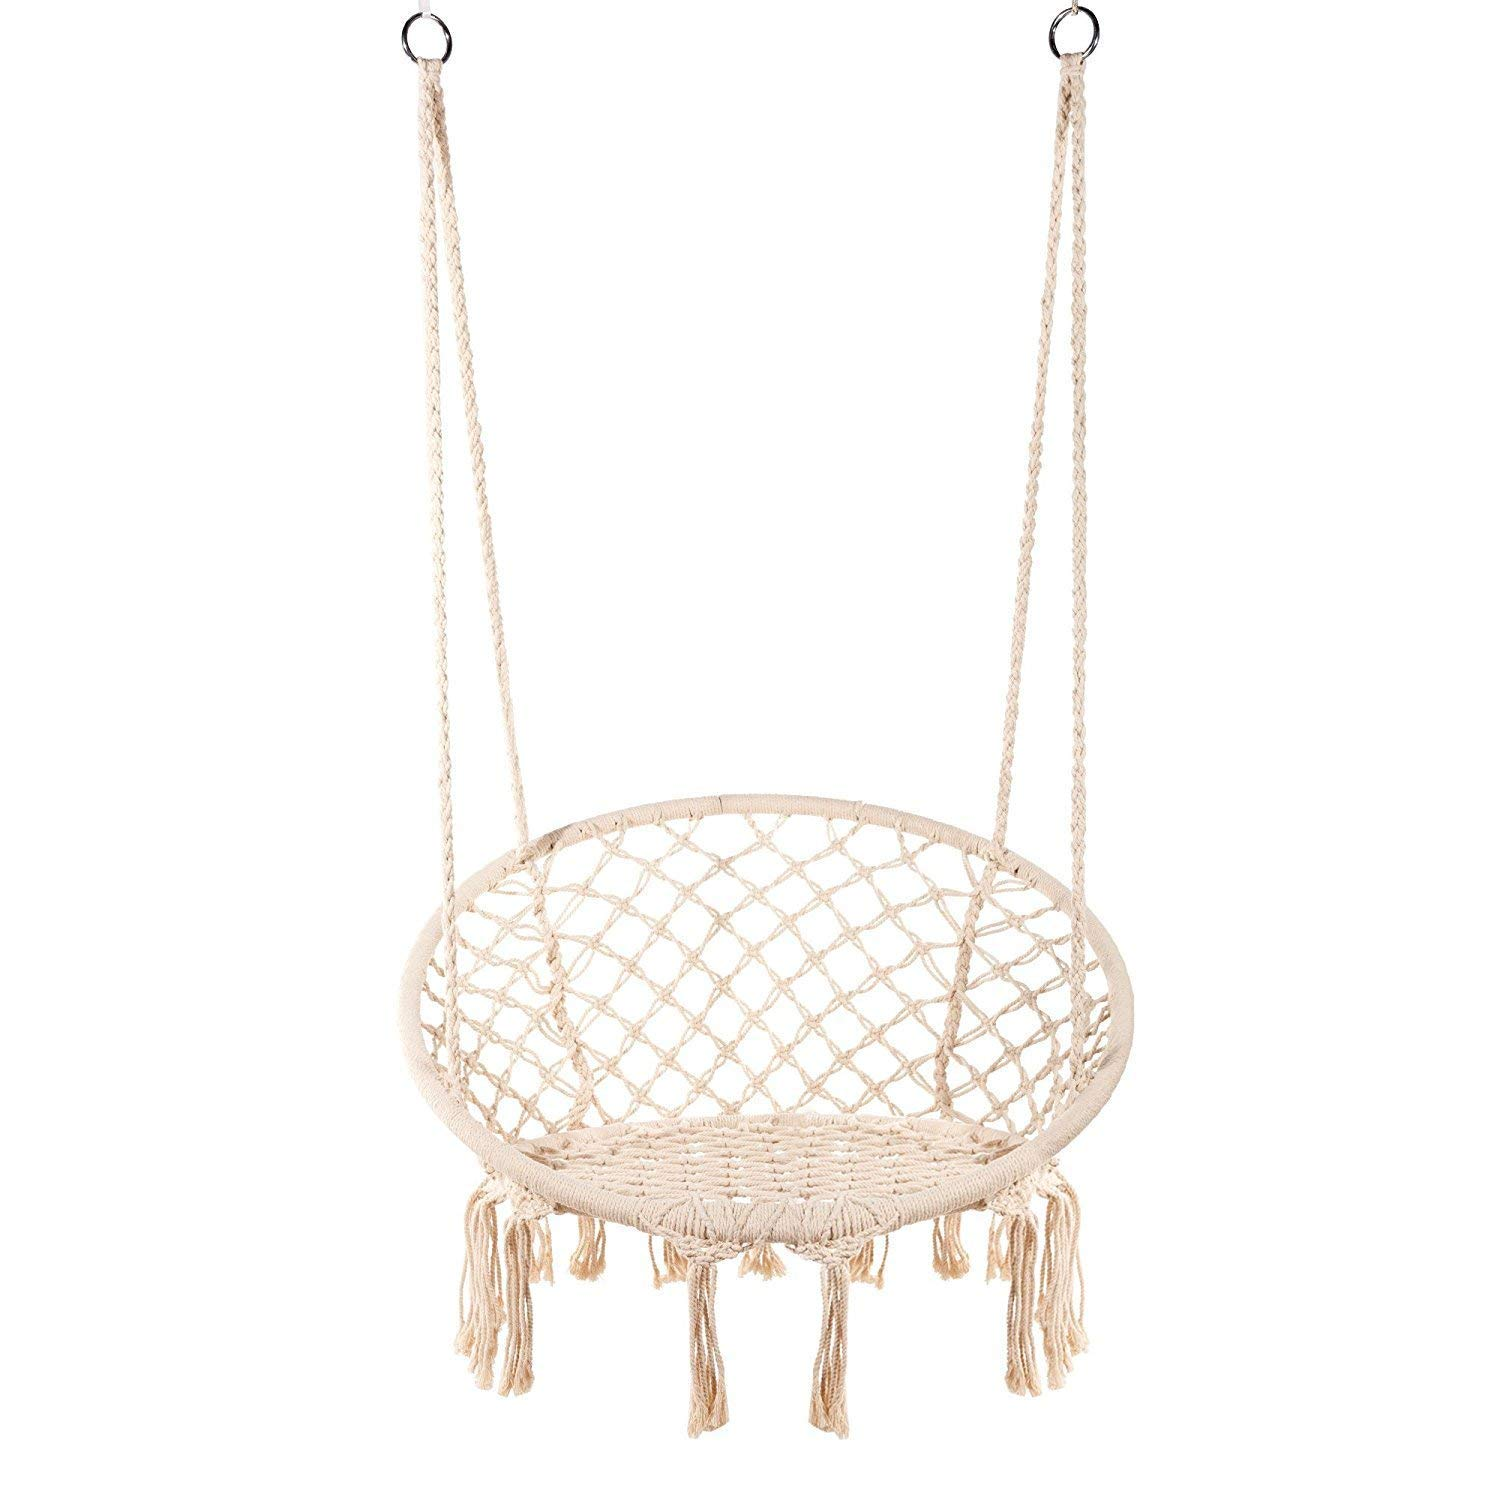 Lelly Q Hammock Chair Macrame Swing Nordic Style Handmade Hanging Chair Swing Chair – Max. 265 Lbs Seat for The Living Room,Yard,Garden, Balconyor Spaces – Max. 265 lbs – 2 Seat Cushions Beige